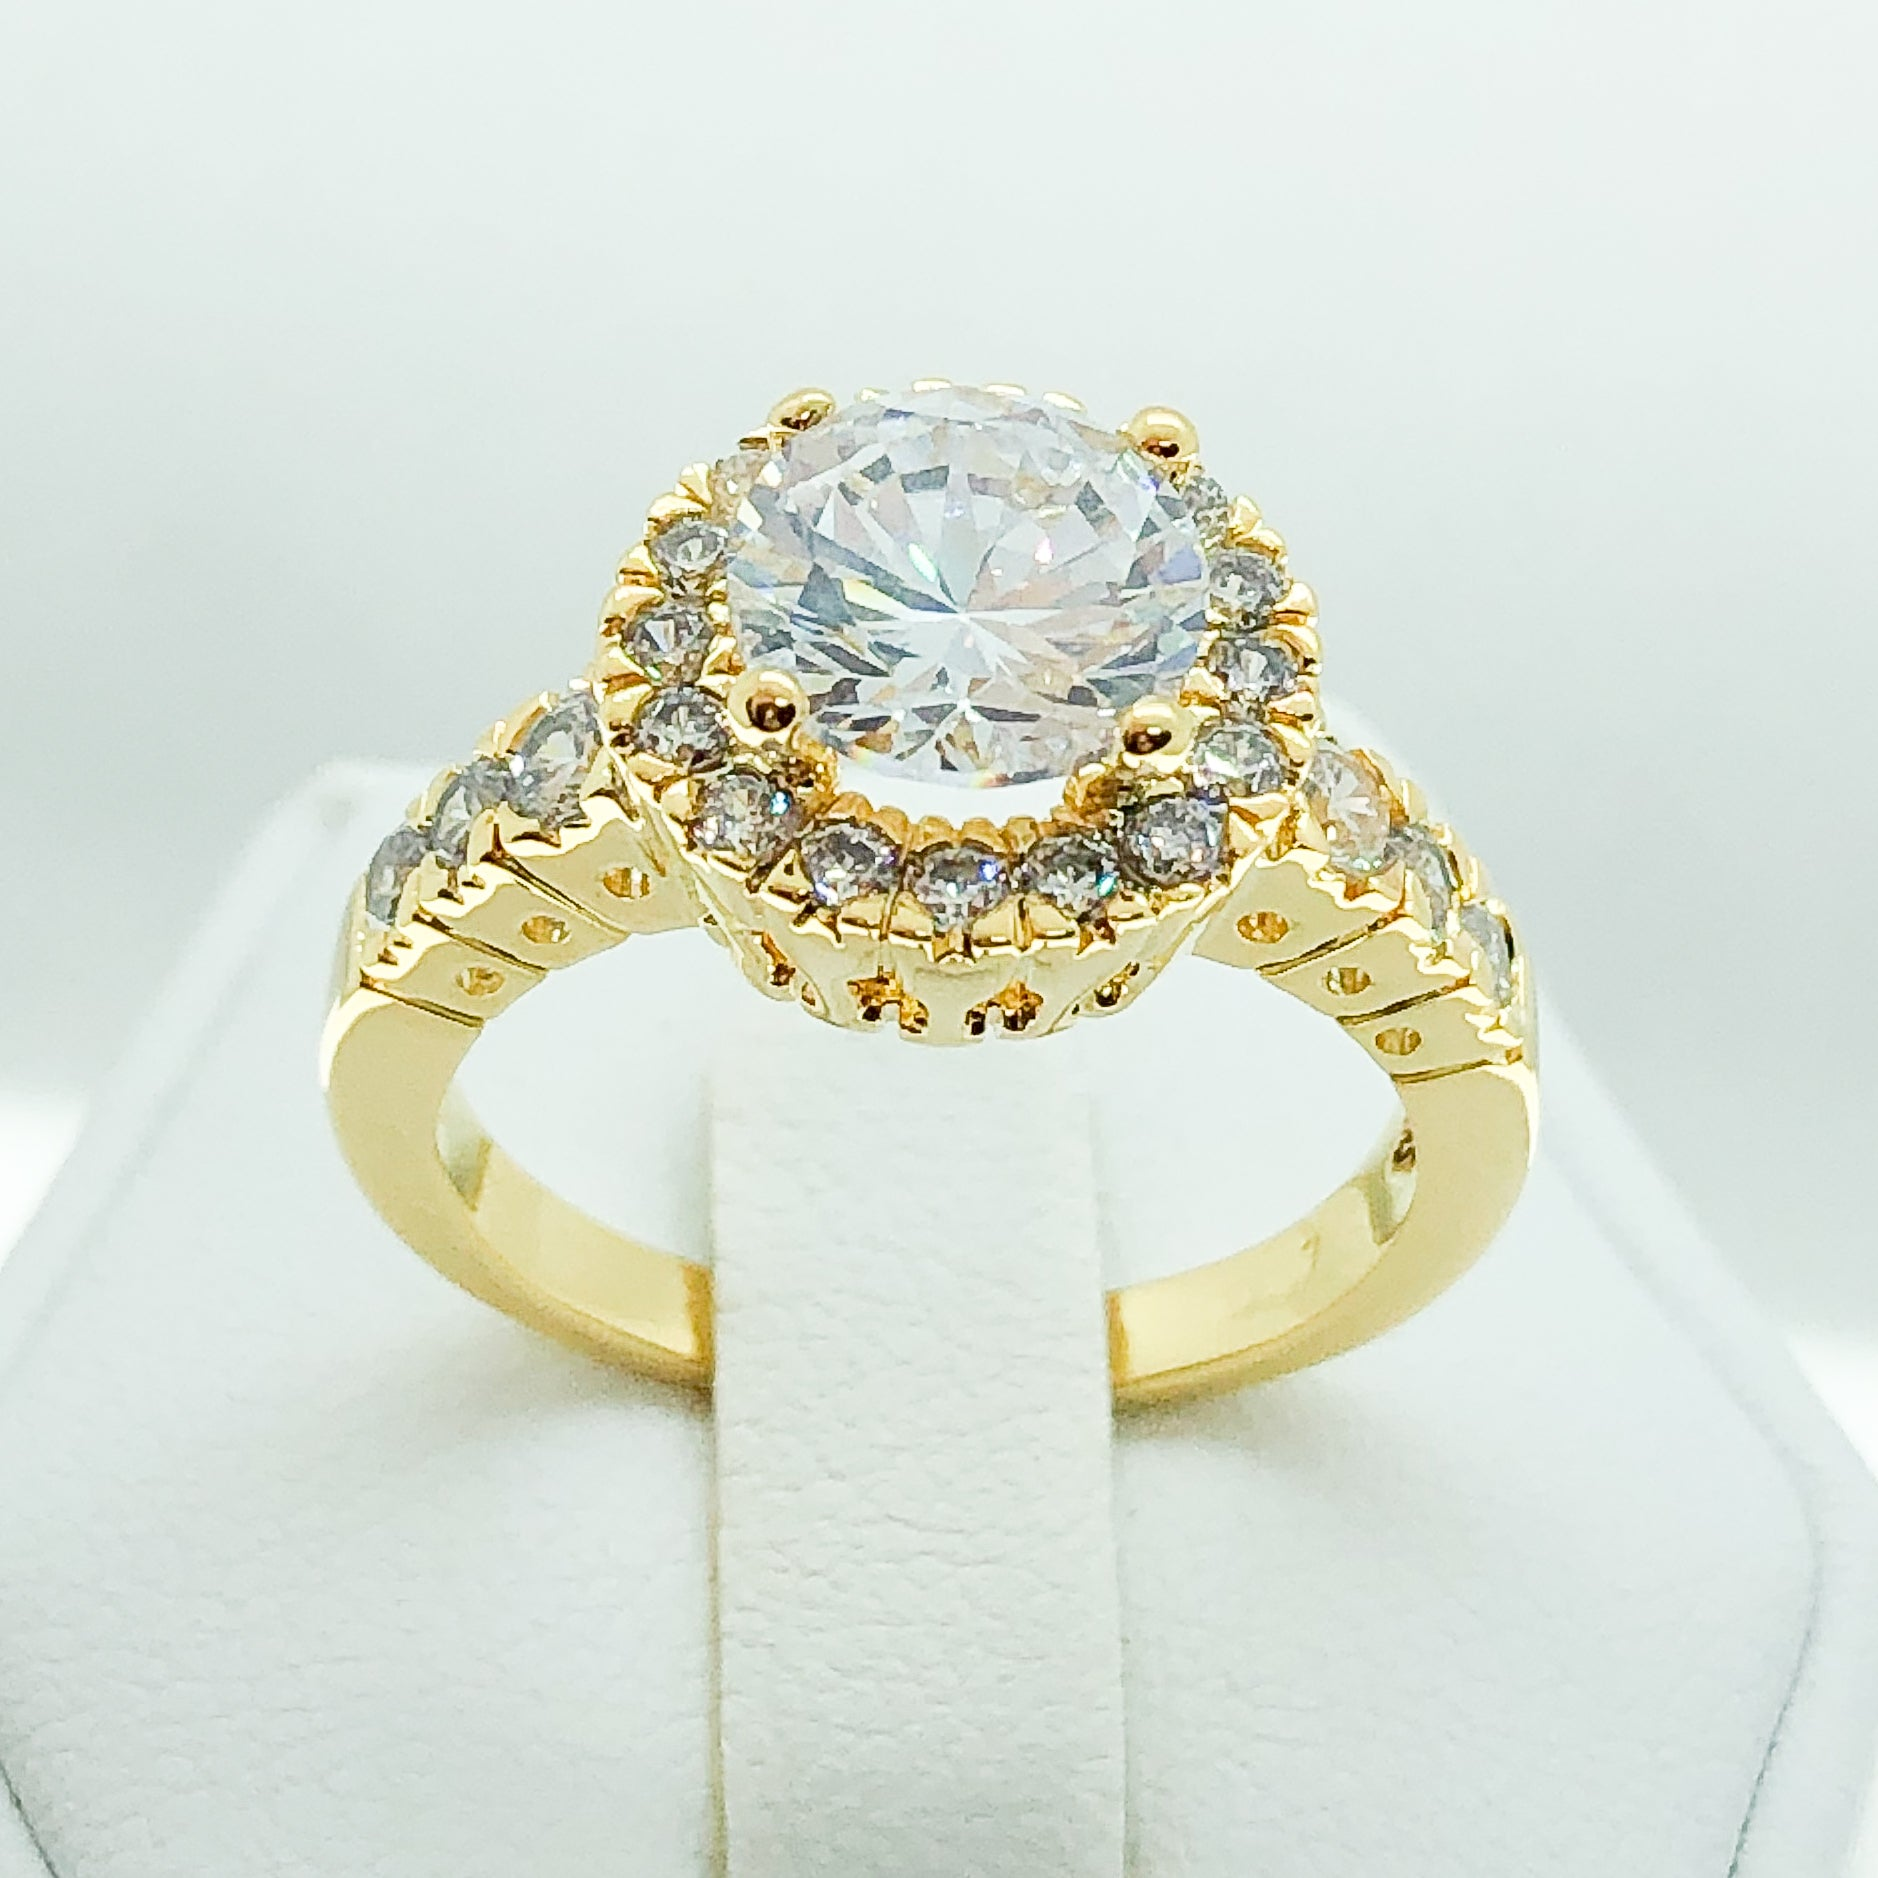 ID:R0181 Women Vintage Jewelry 18K Yellow Gold GF Outstanding Engagement Wedding Bridal Diamonique Solitaire Ring With Accent